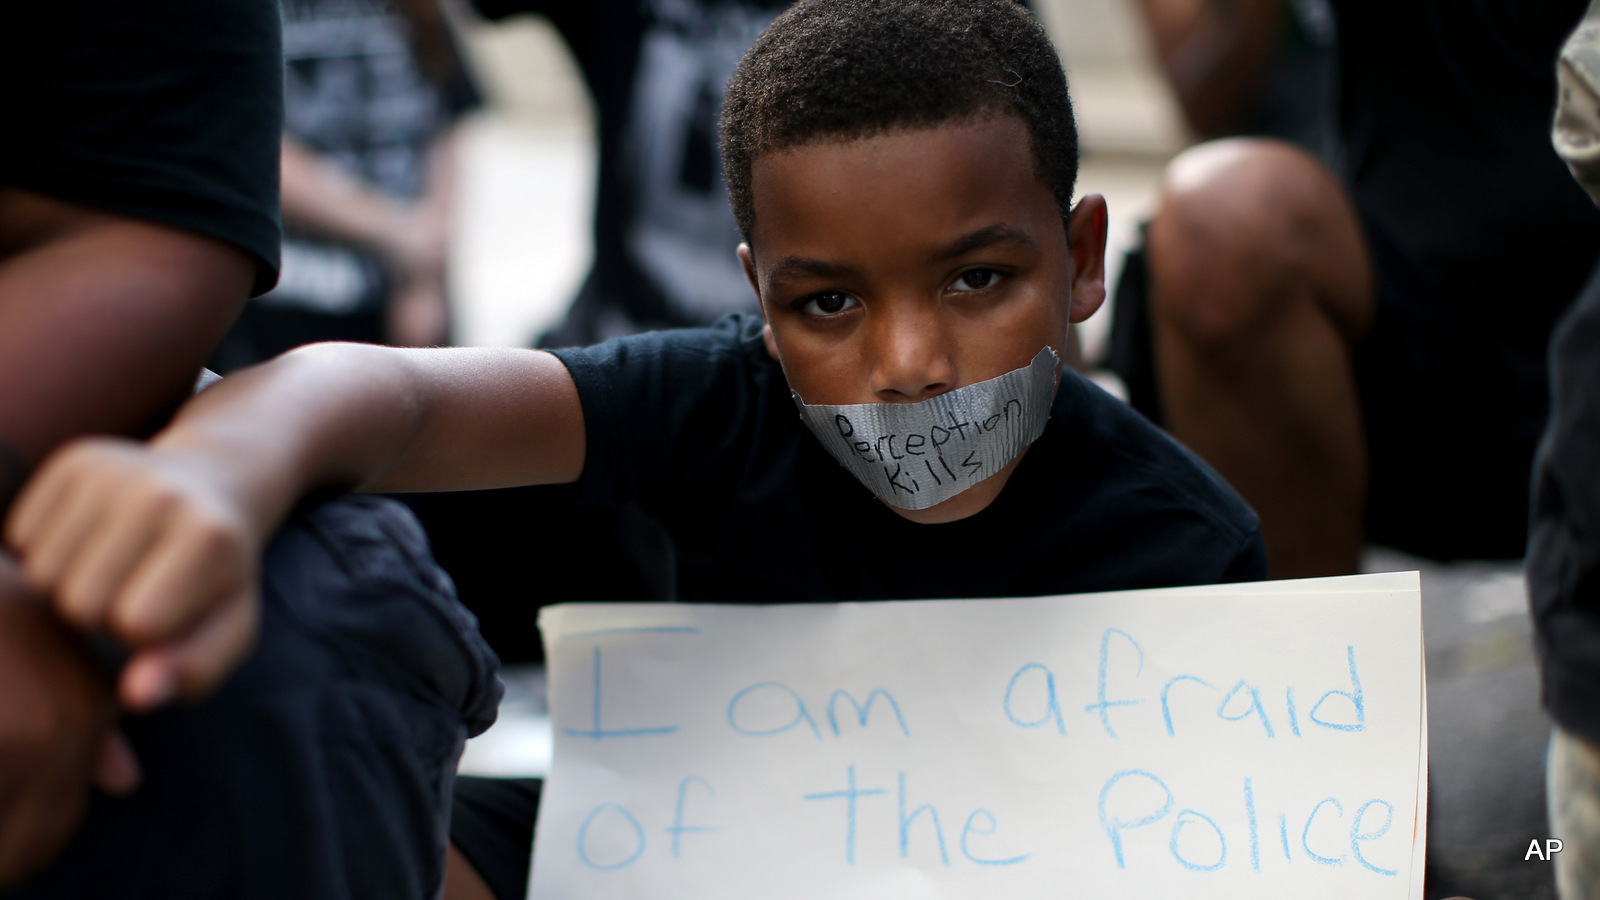 A young boy holds his fist up while wearing tape over his mouth during a Black Lives Matter protest at an entrance to Lenox Square Mall in Atlanta, Saturday, Sept. 24, 2016, in response to the police shooting deaths of Terence Crutcher in Tulsa, Okla. and Keith Lamont Scott in Charlotte, N.C. The Black Lives Matter chapter of Atlanta is boycotting major retailers following the recent police shooting deaths involving black men.